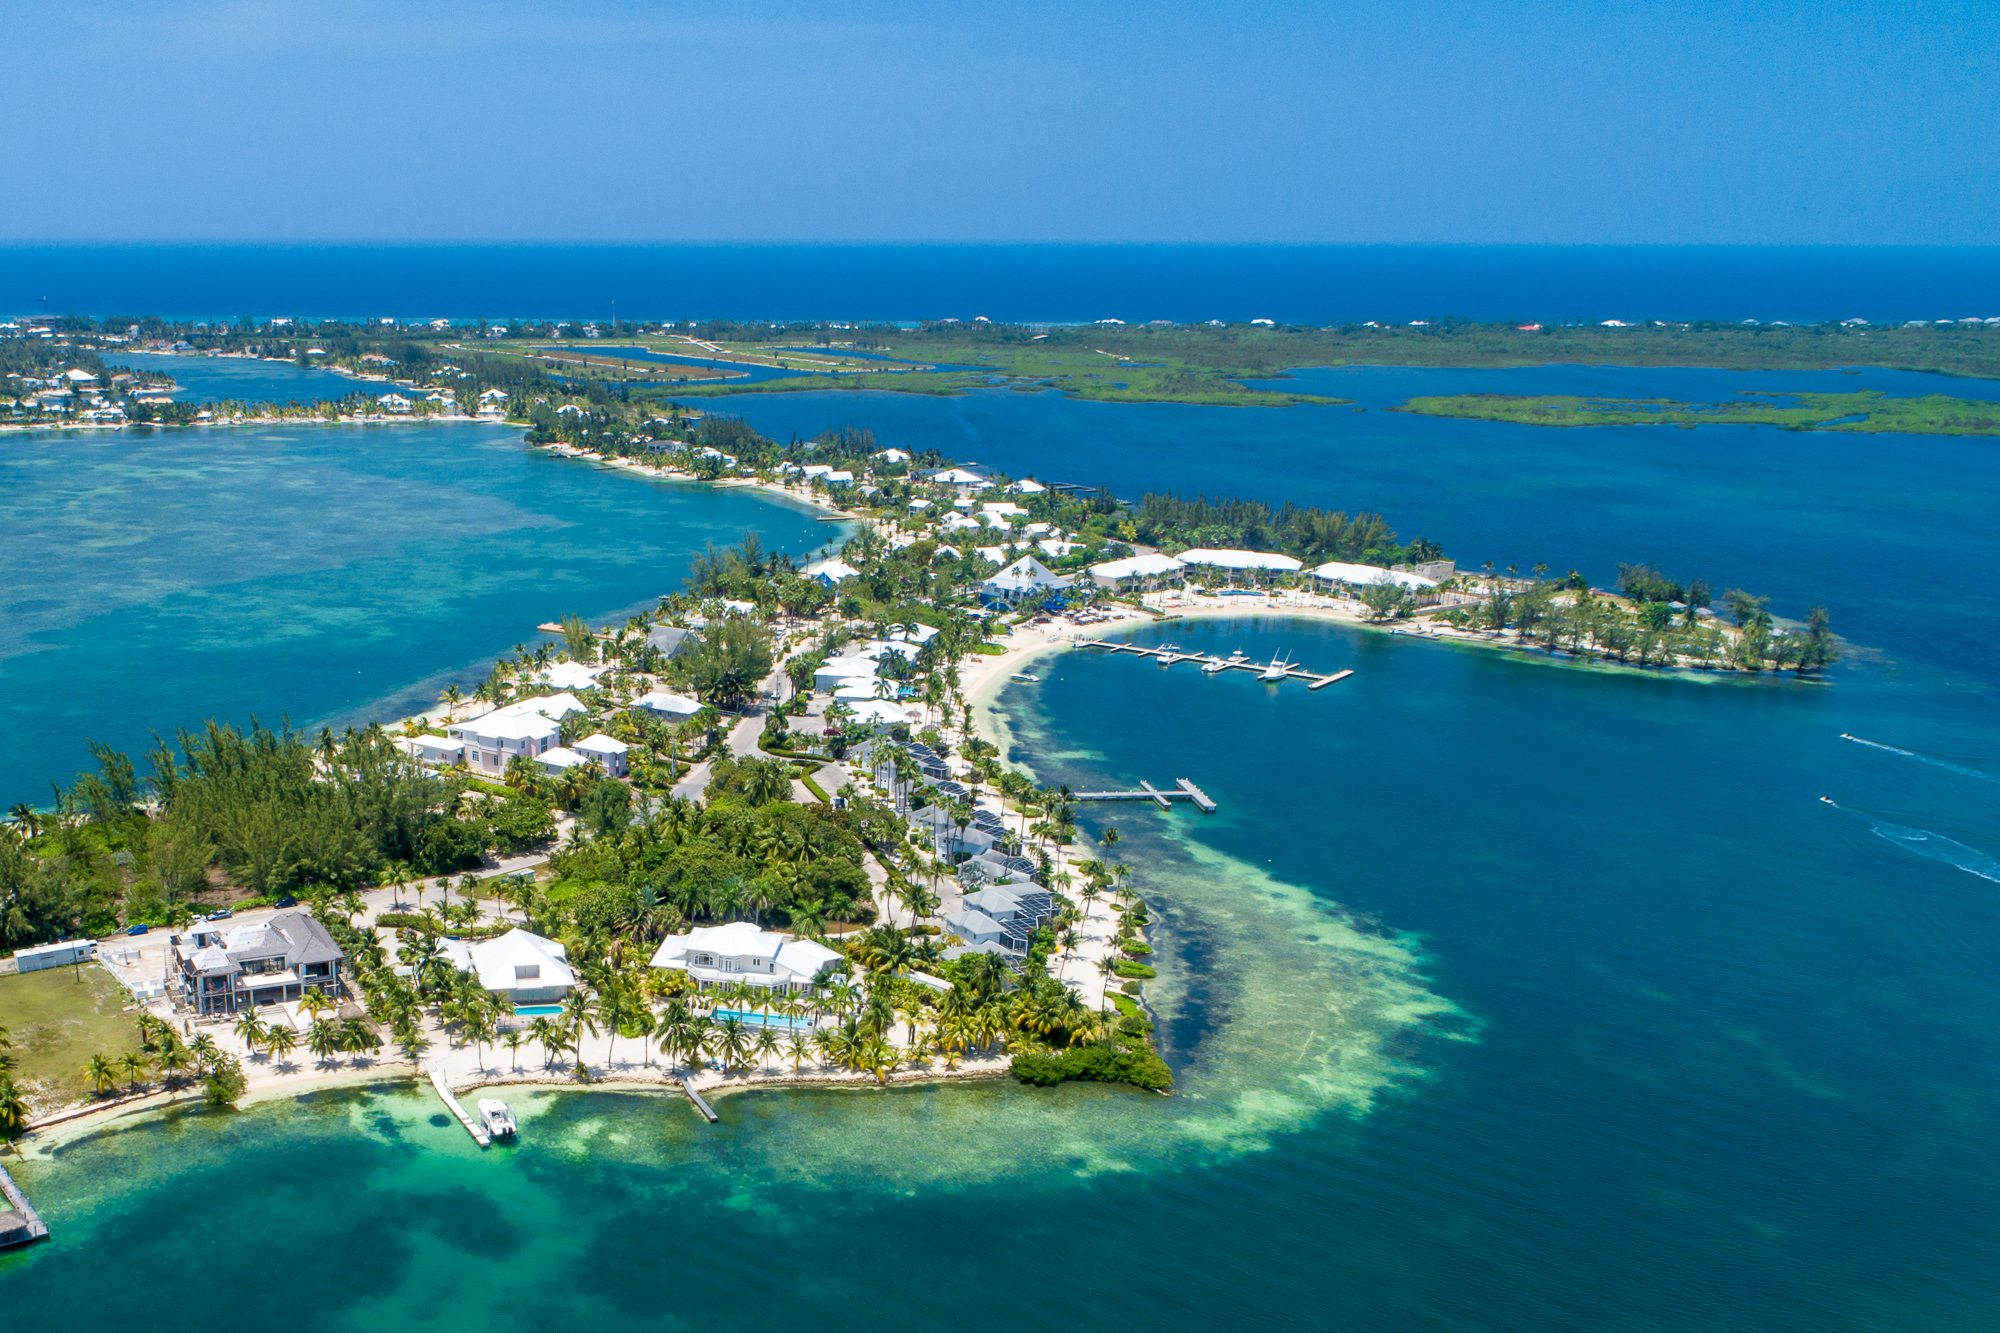 Rum Point Aerial View